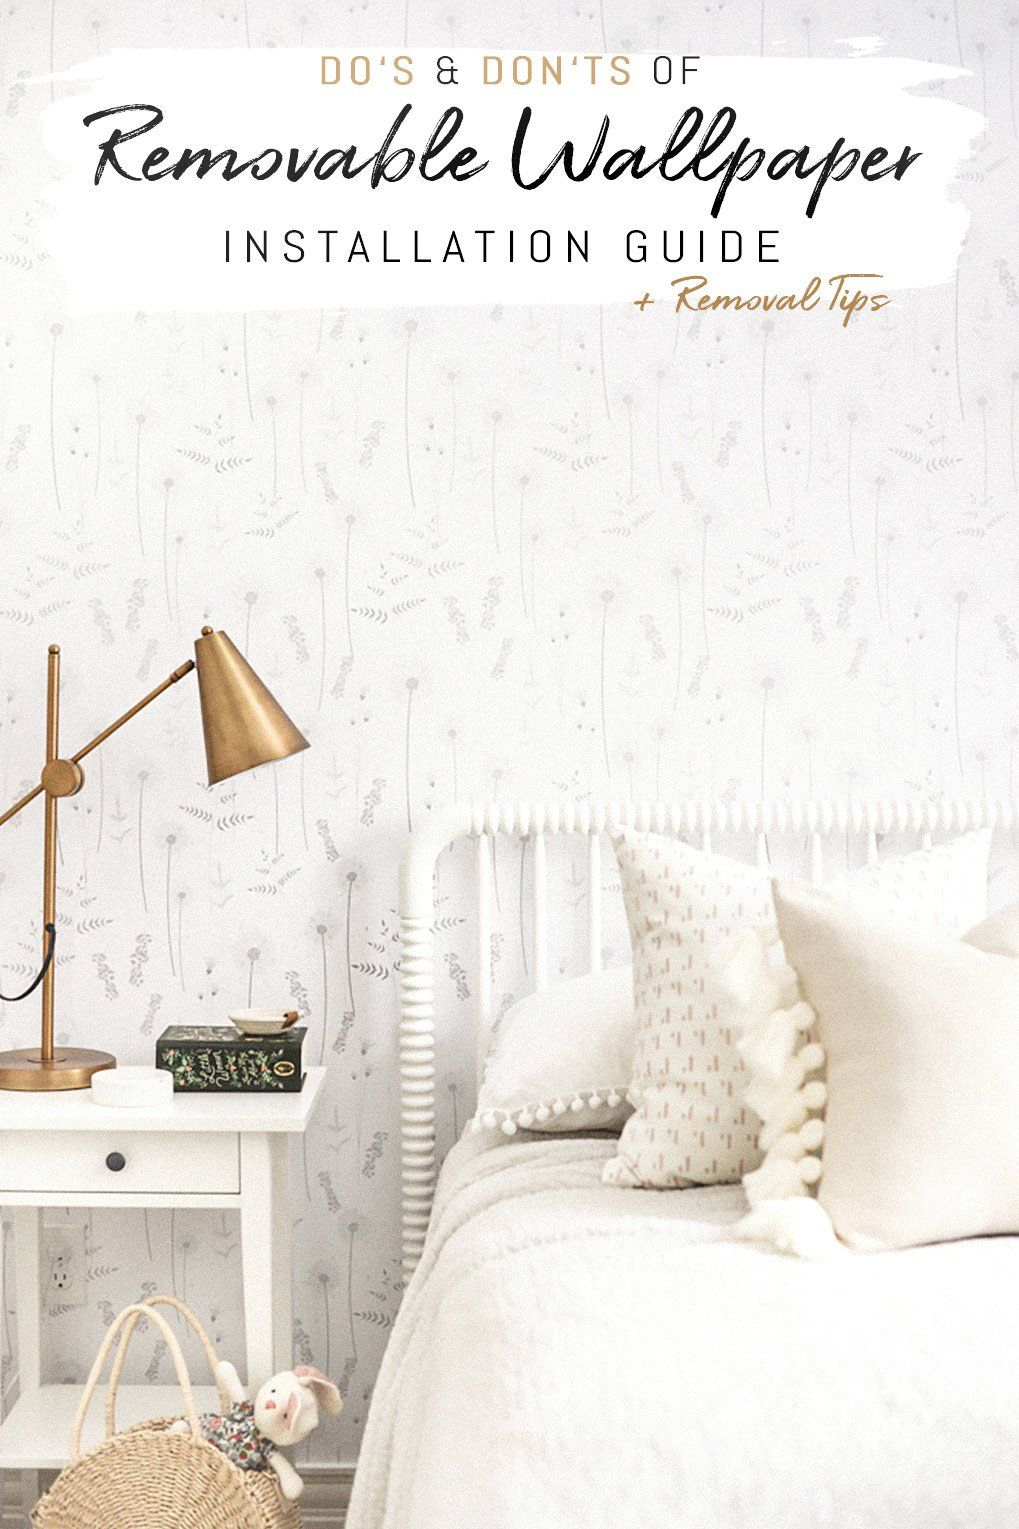 Removable Wallpaper Do S And Don Ts How To Install And Remove Self Adhesive Wallpaper Kids Room Wallpaper Removable Wallpaper Bedroom Makeover